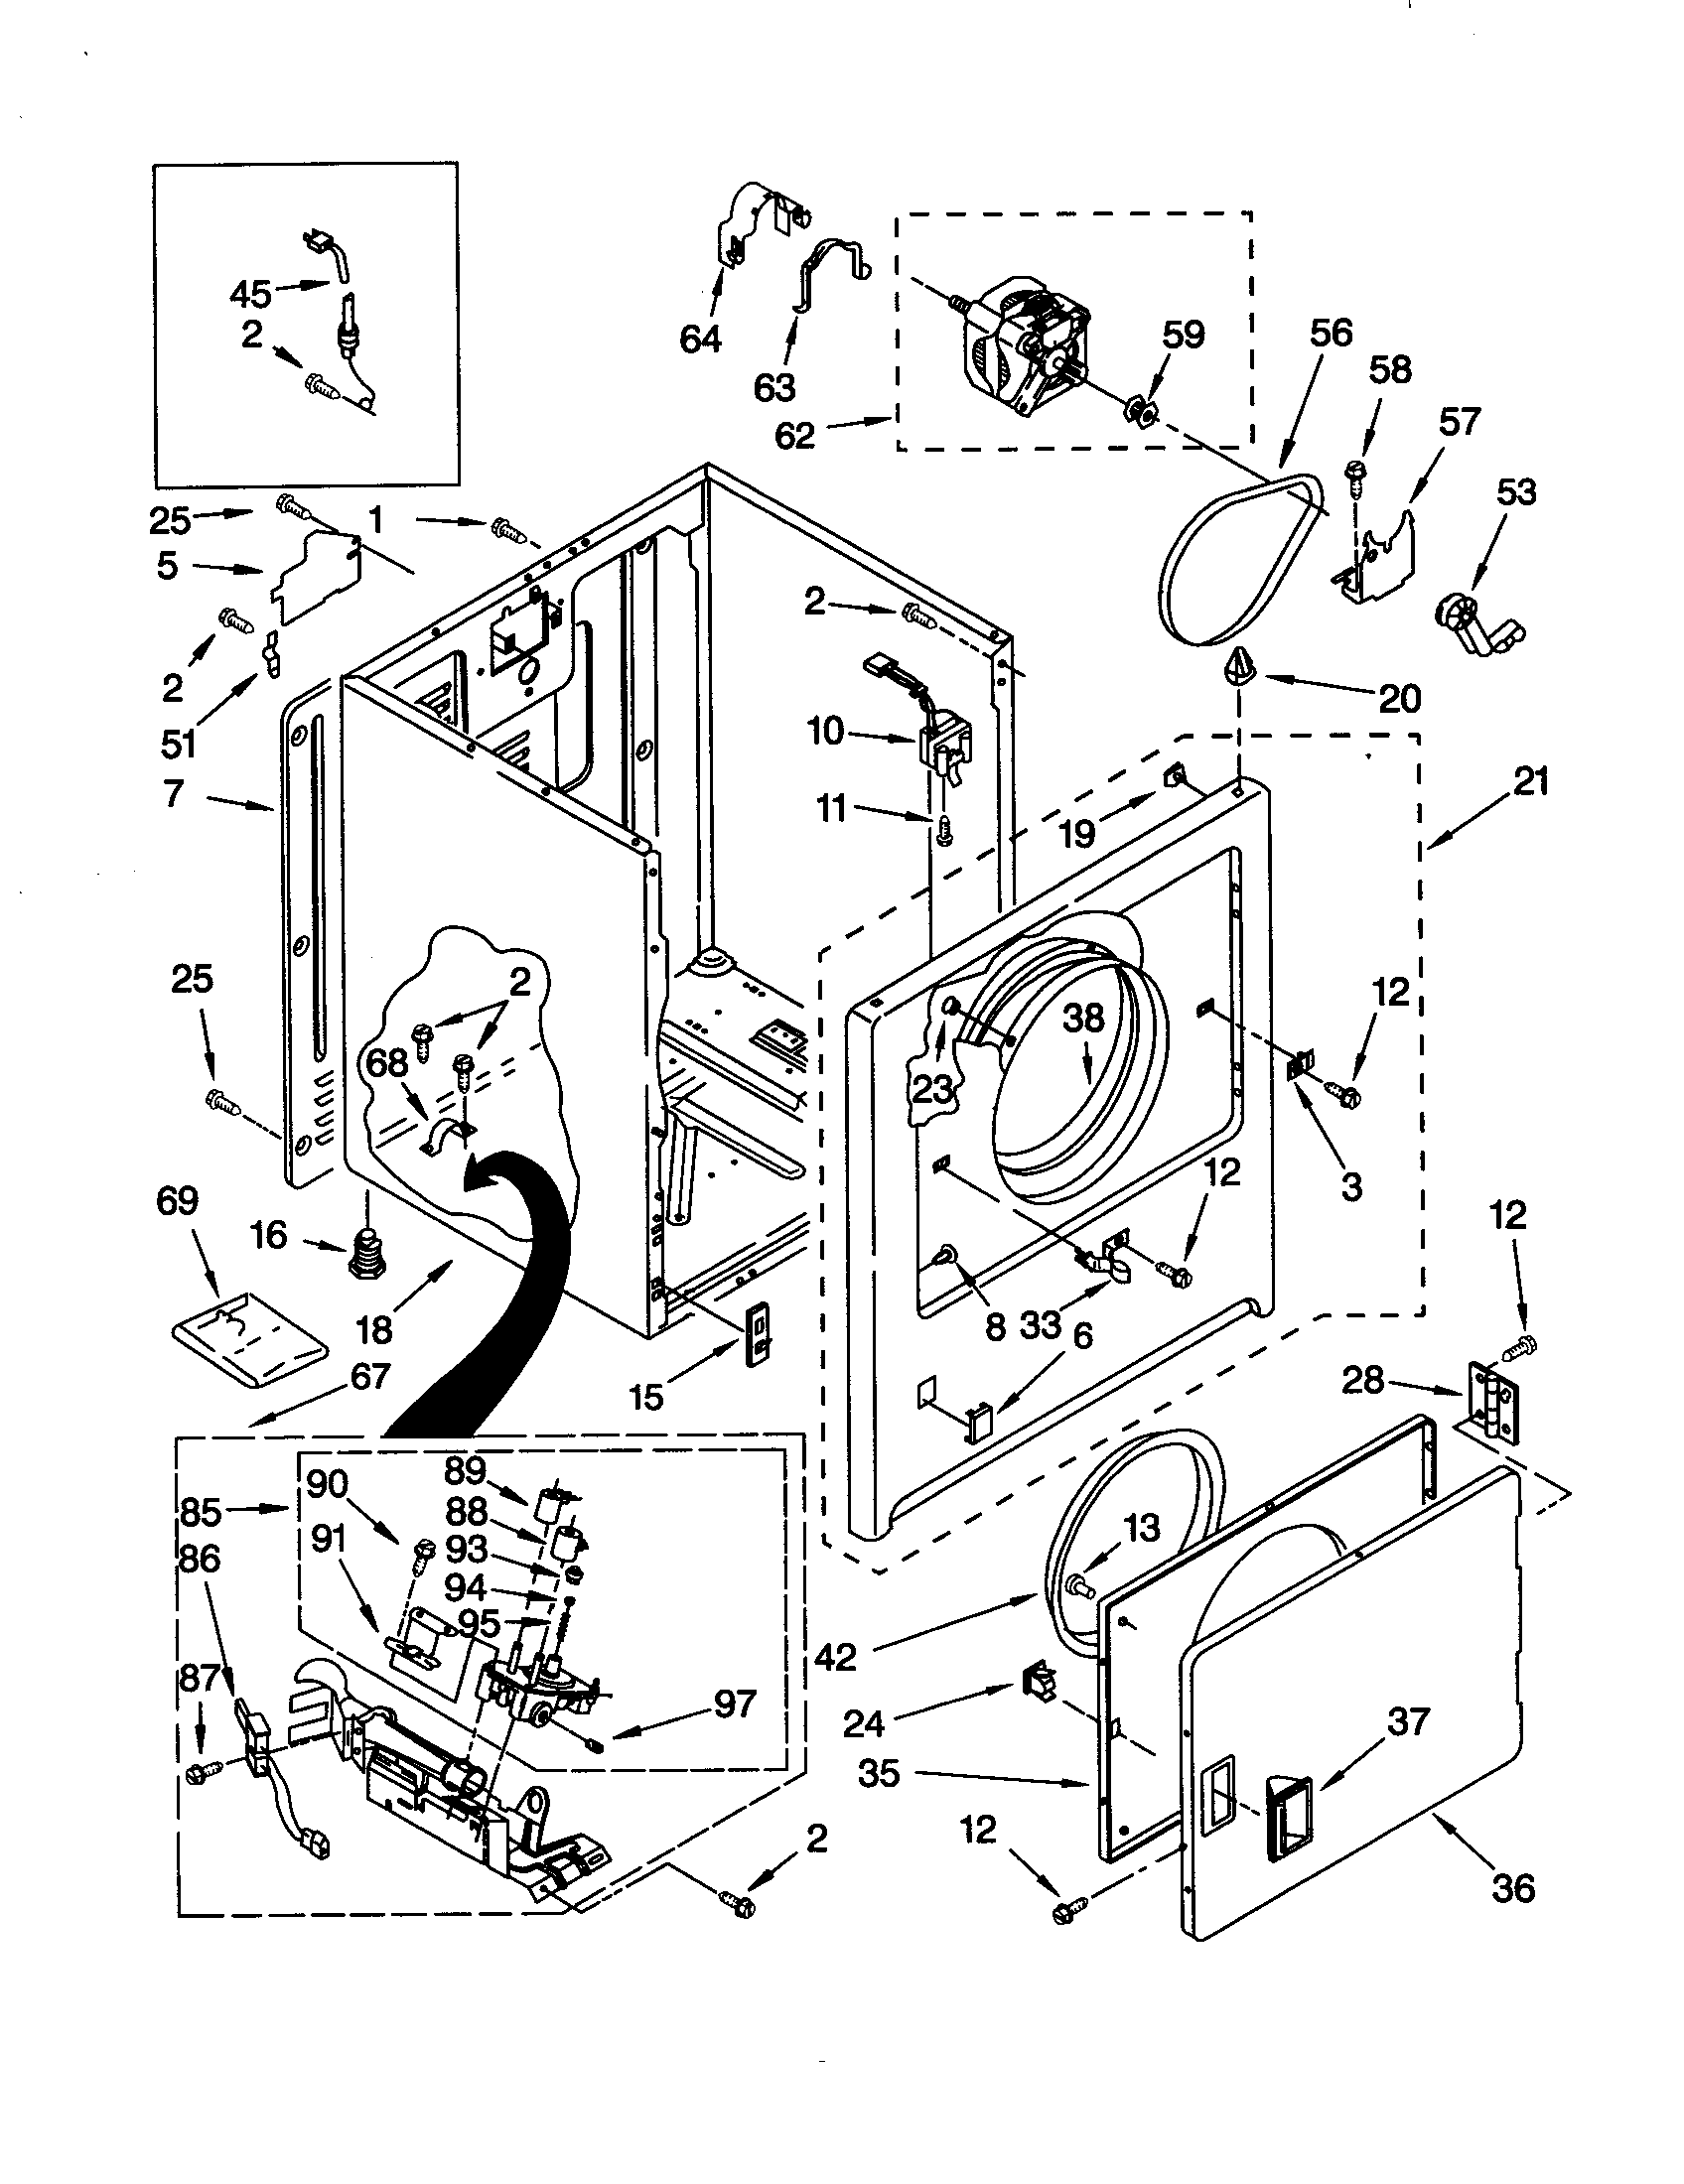 1970 vw karmann ghia wiring diagram